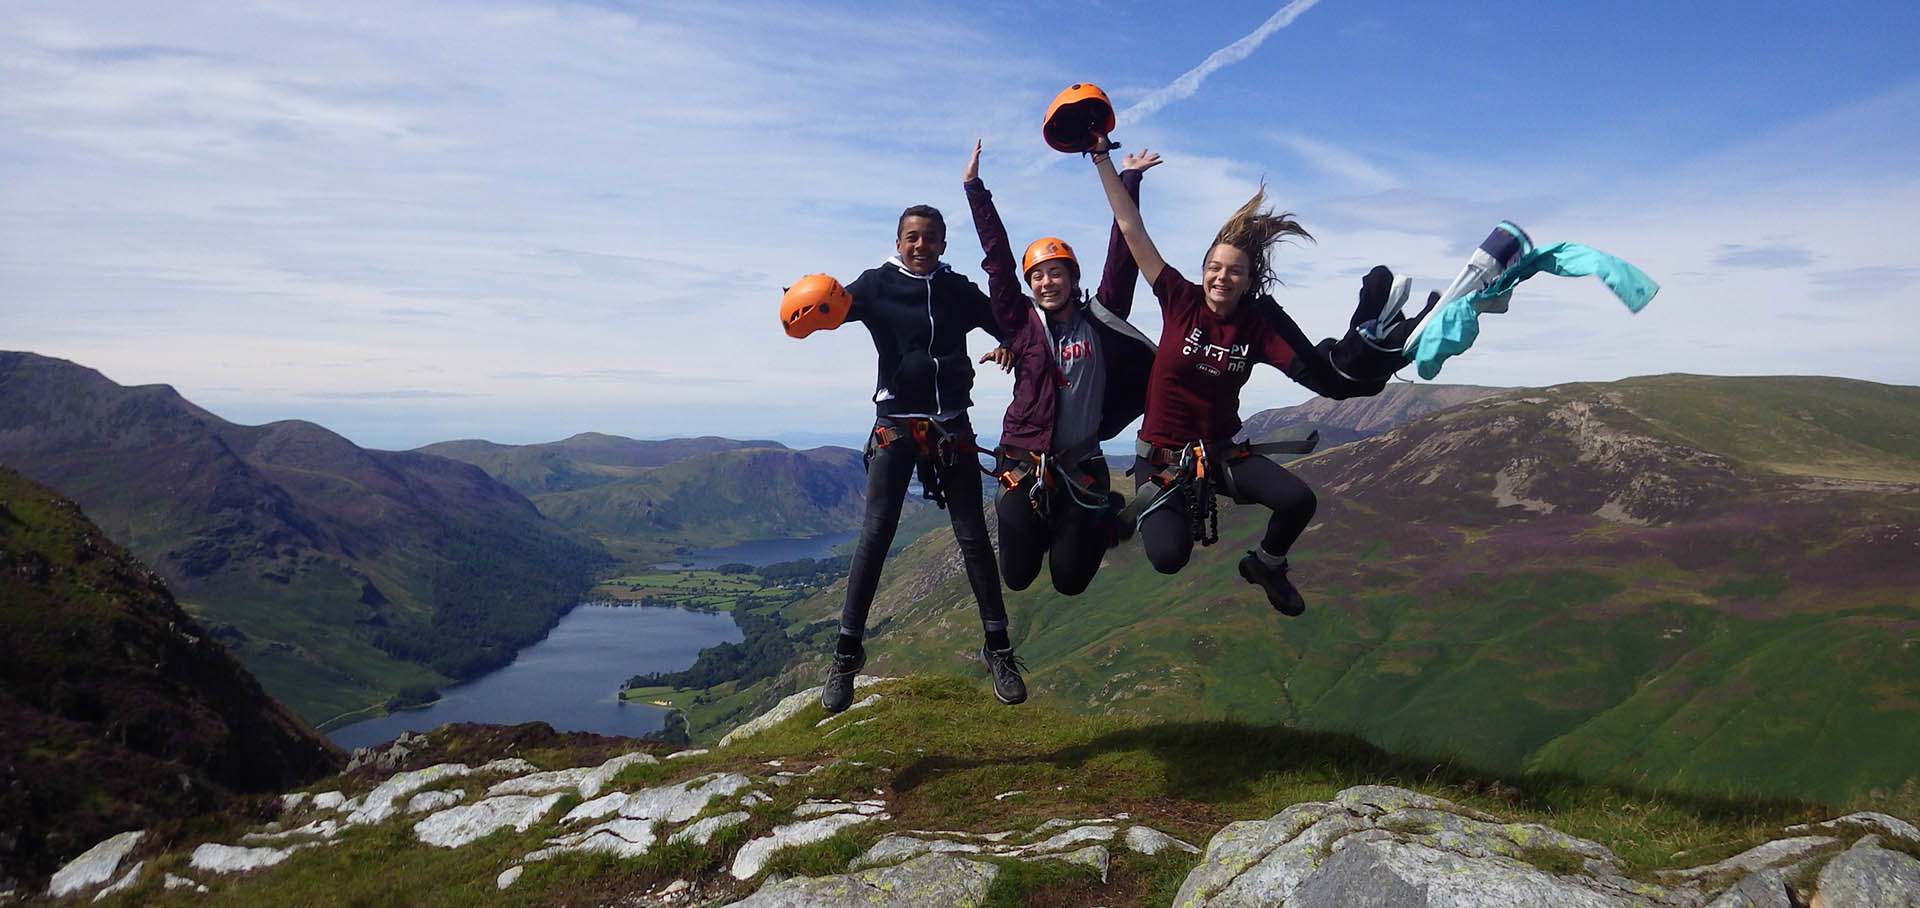 Jumping Via Ferrata at Honister